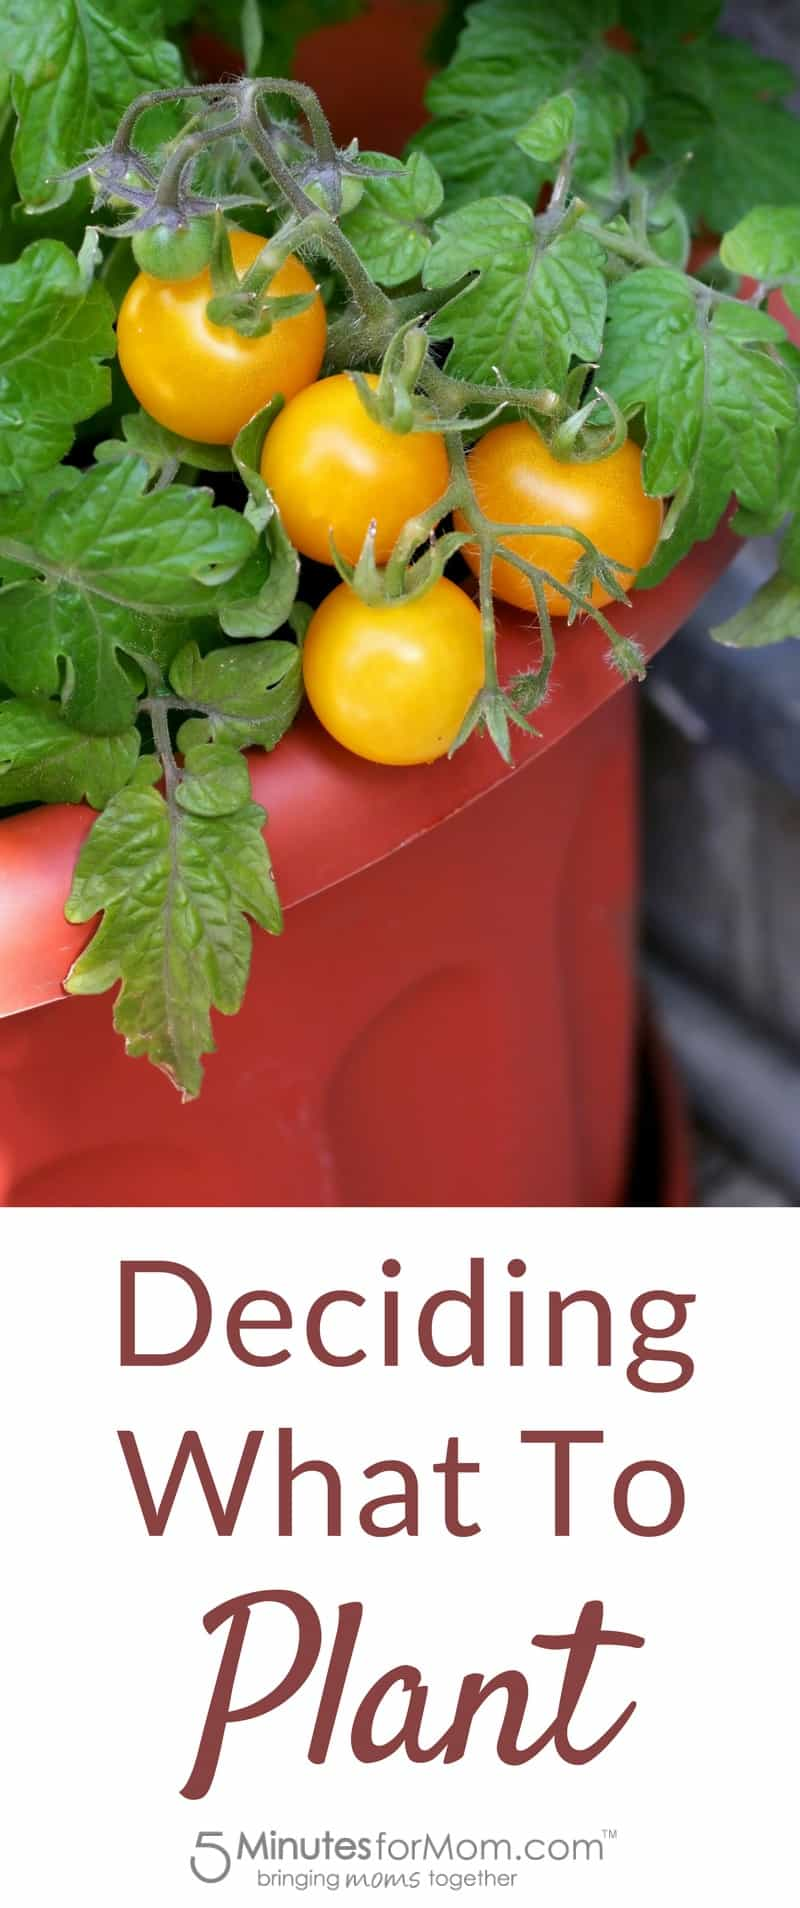 Deciding what to plant when container gardening